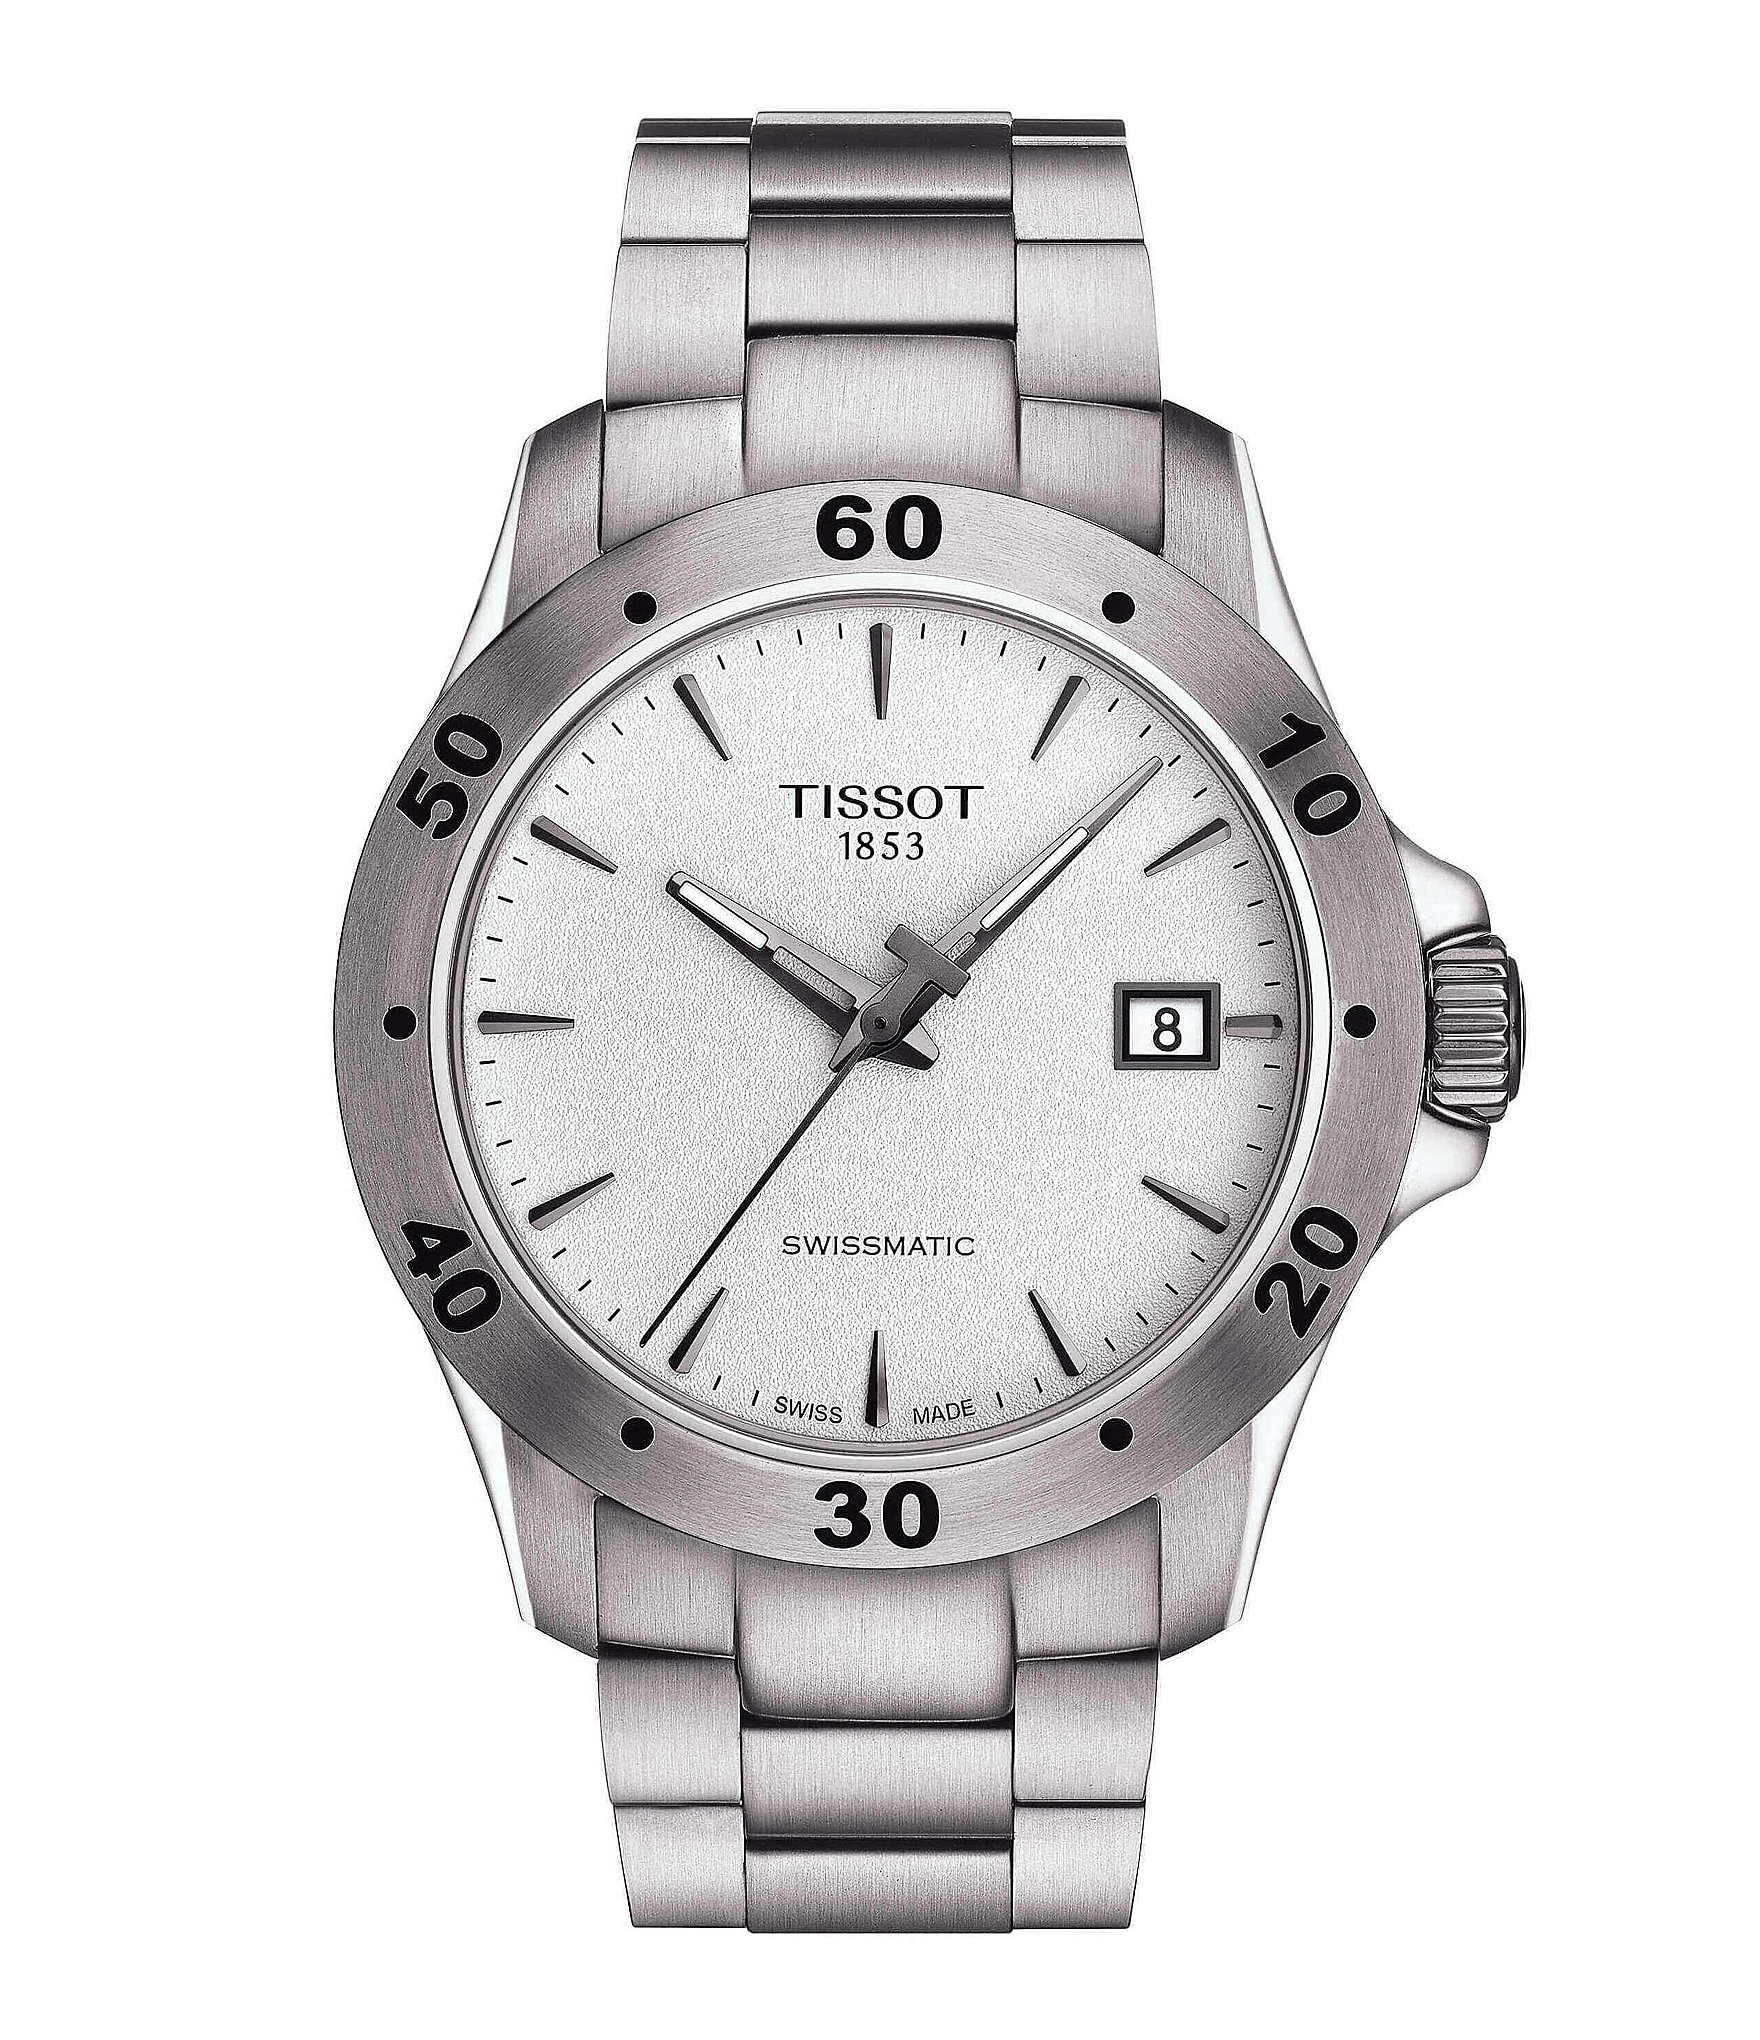 Tissot V8 Swissmatic Watch Dillard S